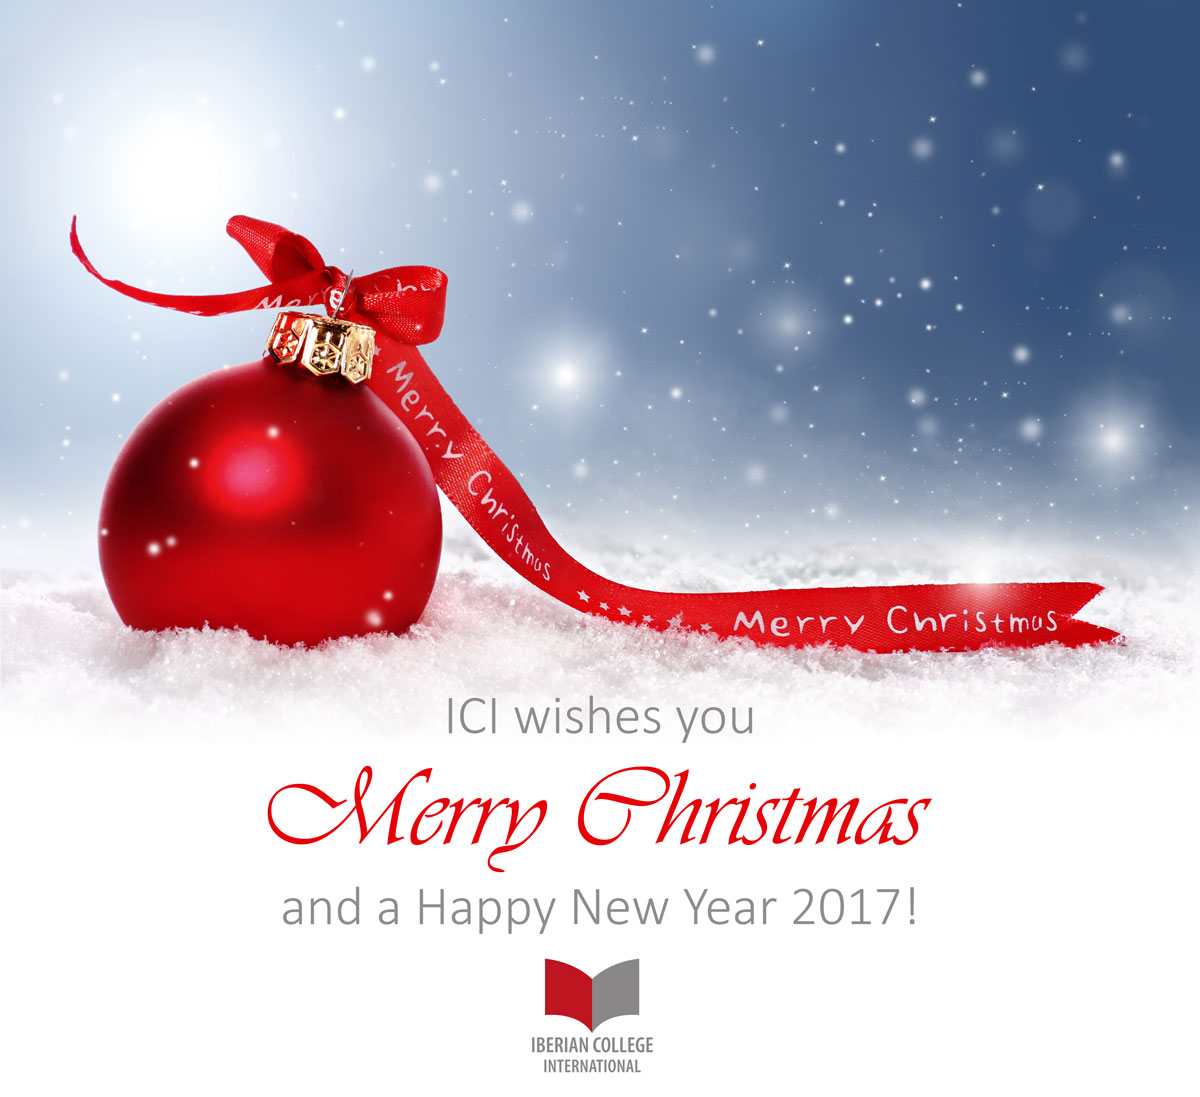 0 responses on the iberian college international team wishes merry christmas and a happy new year